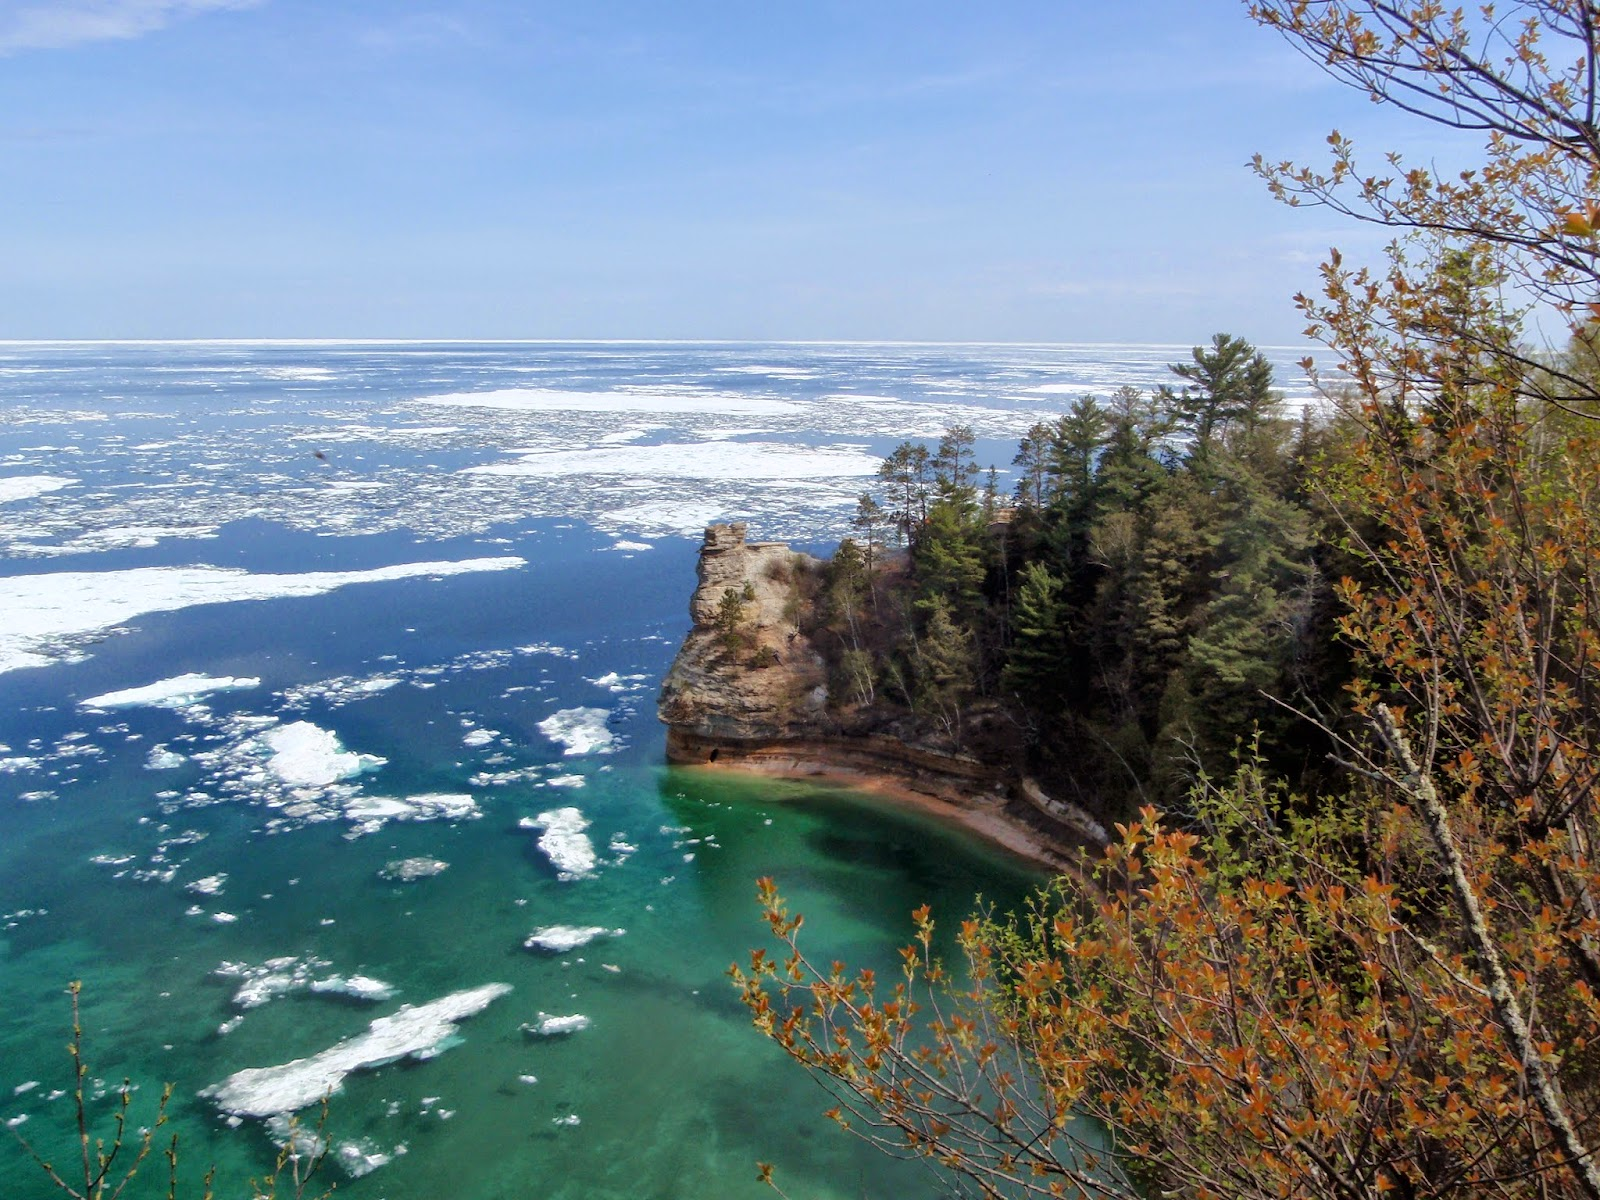 Miners Castle, Pictured Rocks National Lakeshore, Munising MI